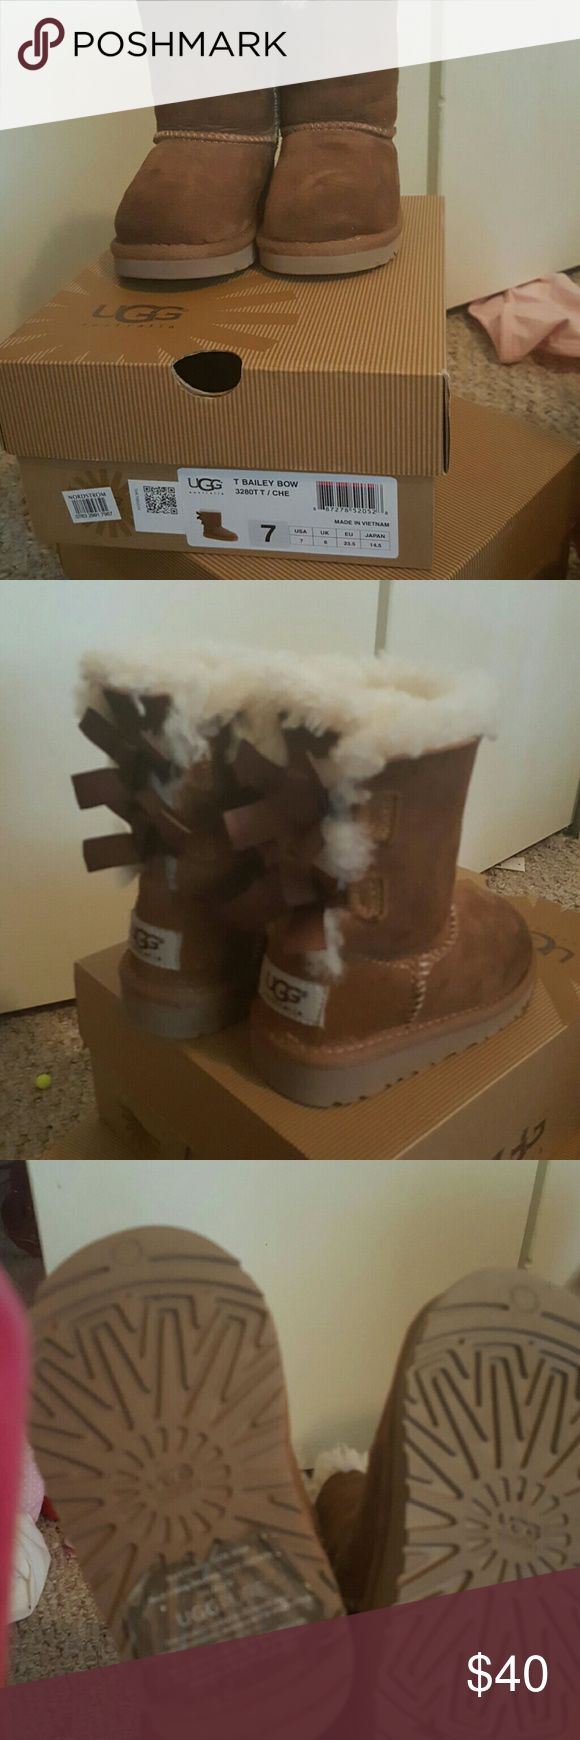 Toddler Girls Ugg Boots Toddler Girls Tan Ugg T Bailey Bow Boots with inside fur UGG Shoes Winter & Rain Boots